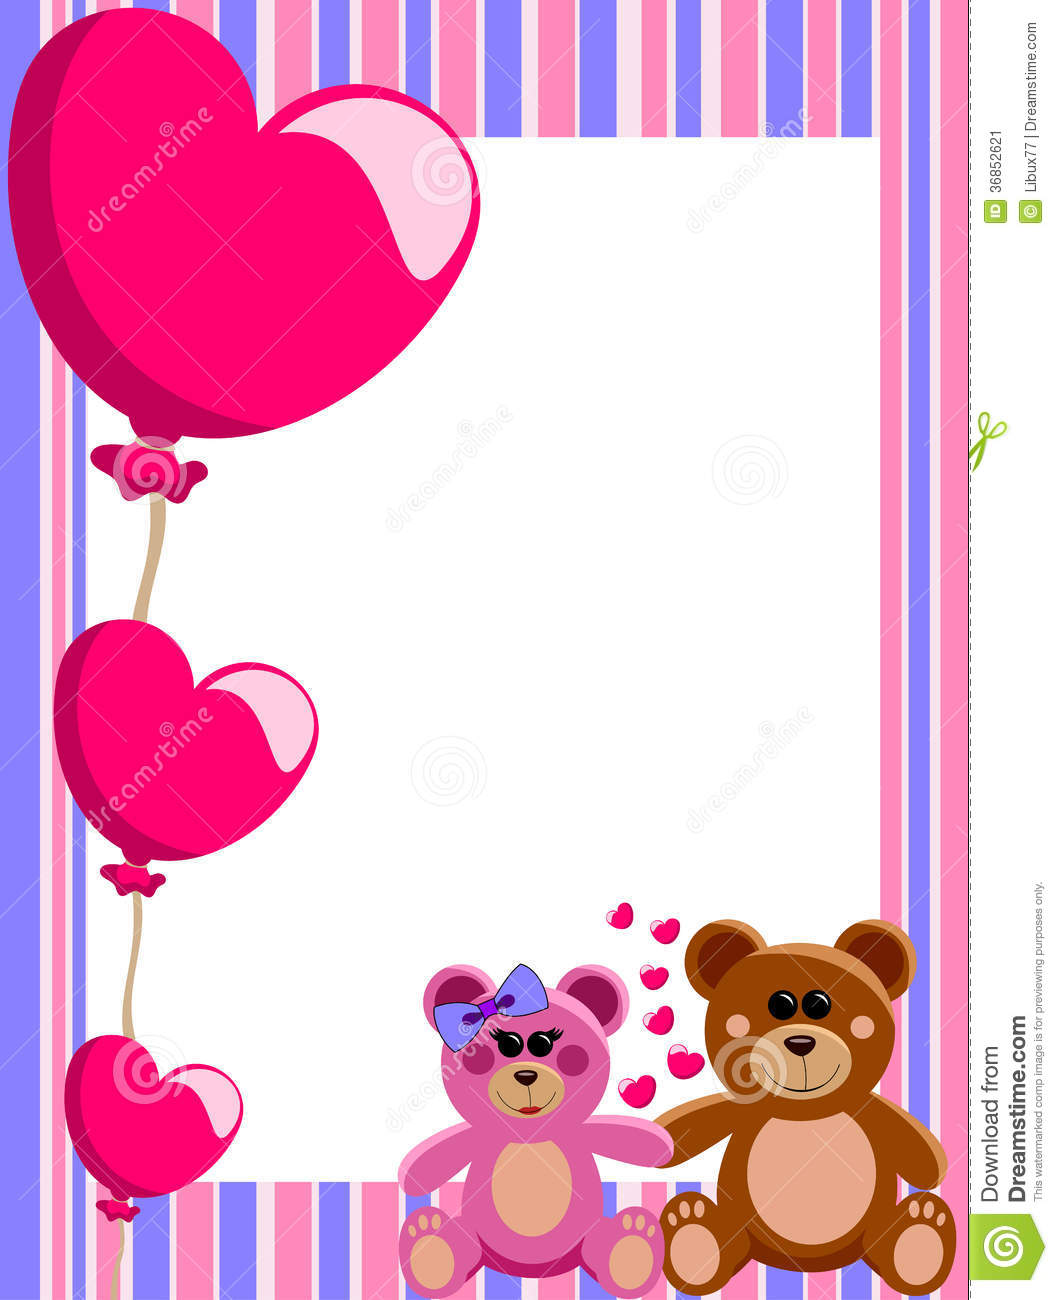 Illustration featuring decorative valentine Love Frame or Border with ...